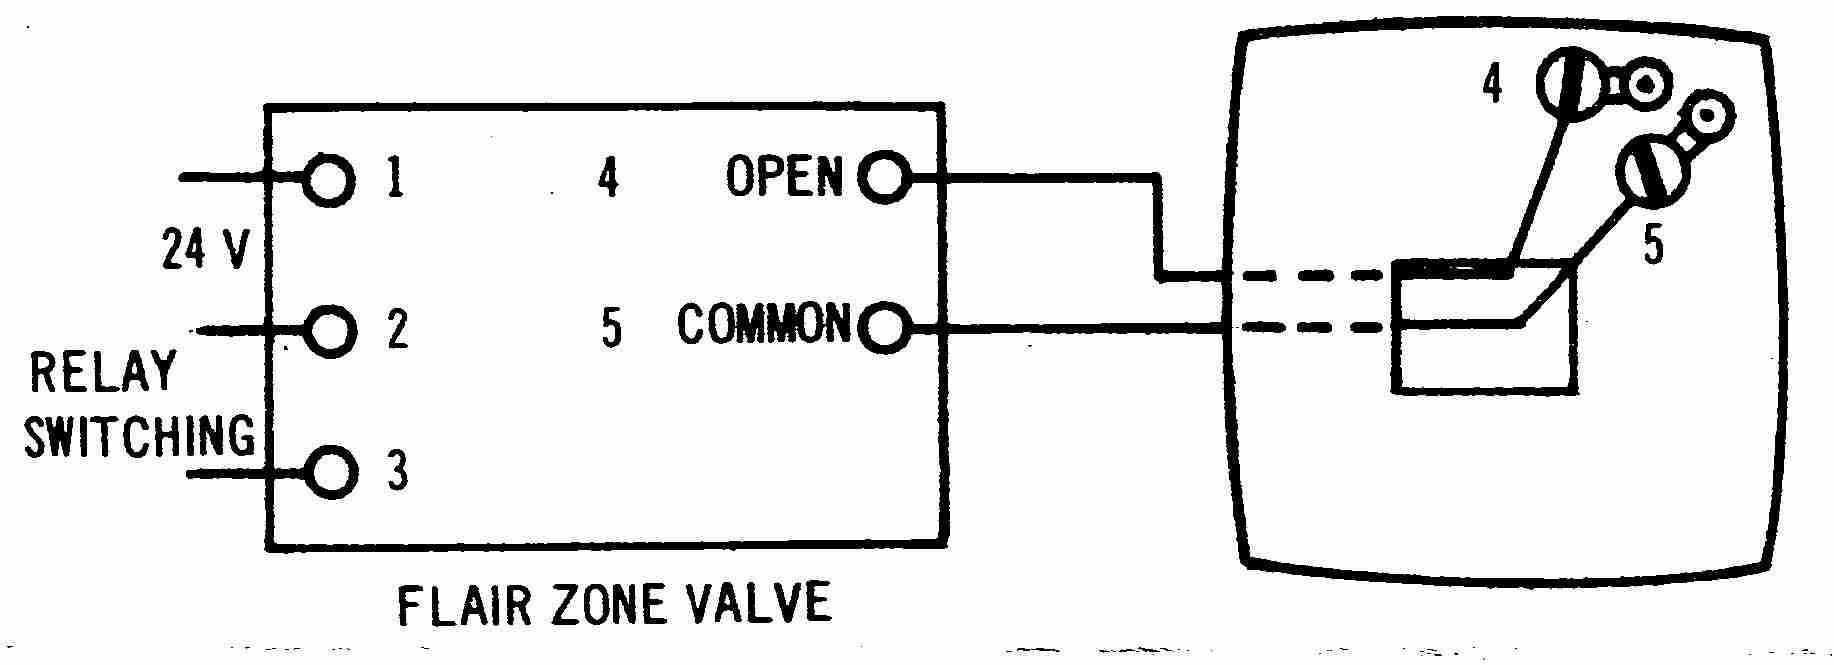 Flair2w_001_DJFc1 room thermostat wiring diagrams for hvac systems fcu wiring diagram at cos-gaming.co